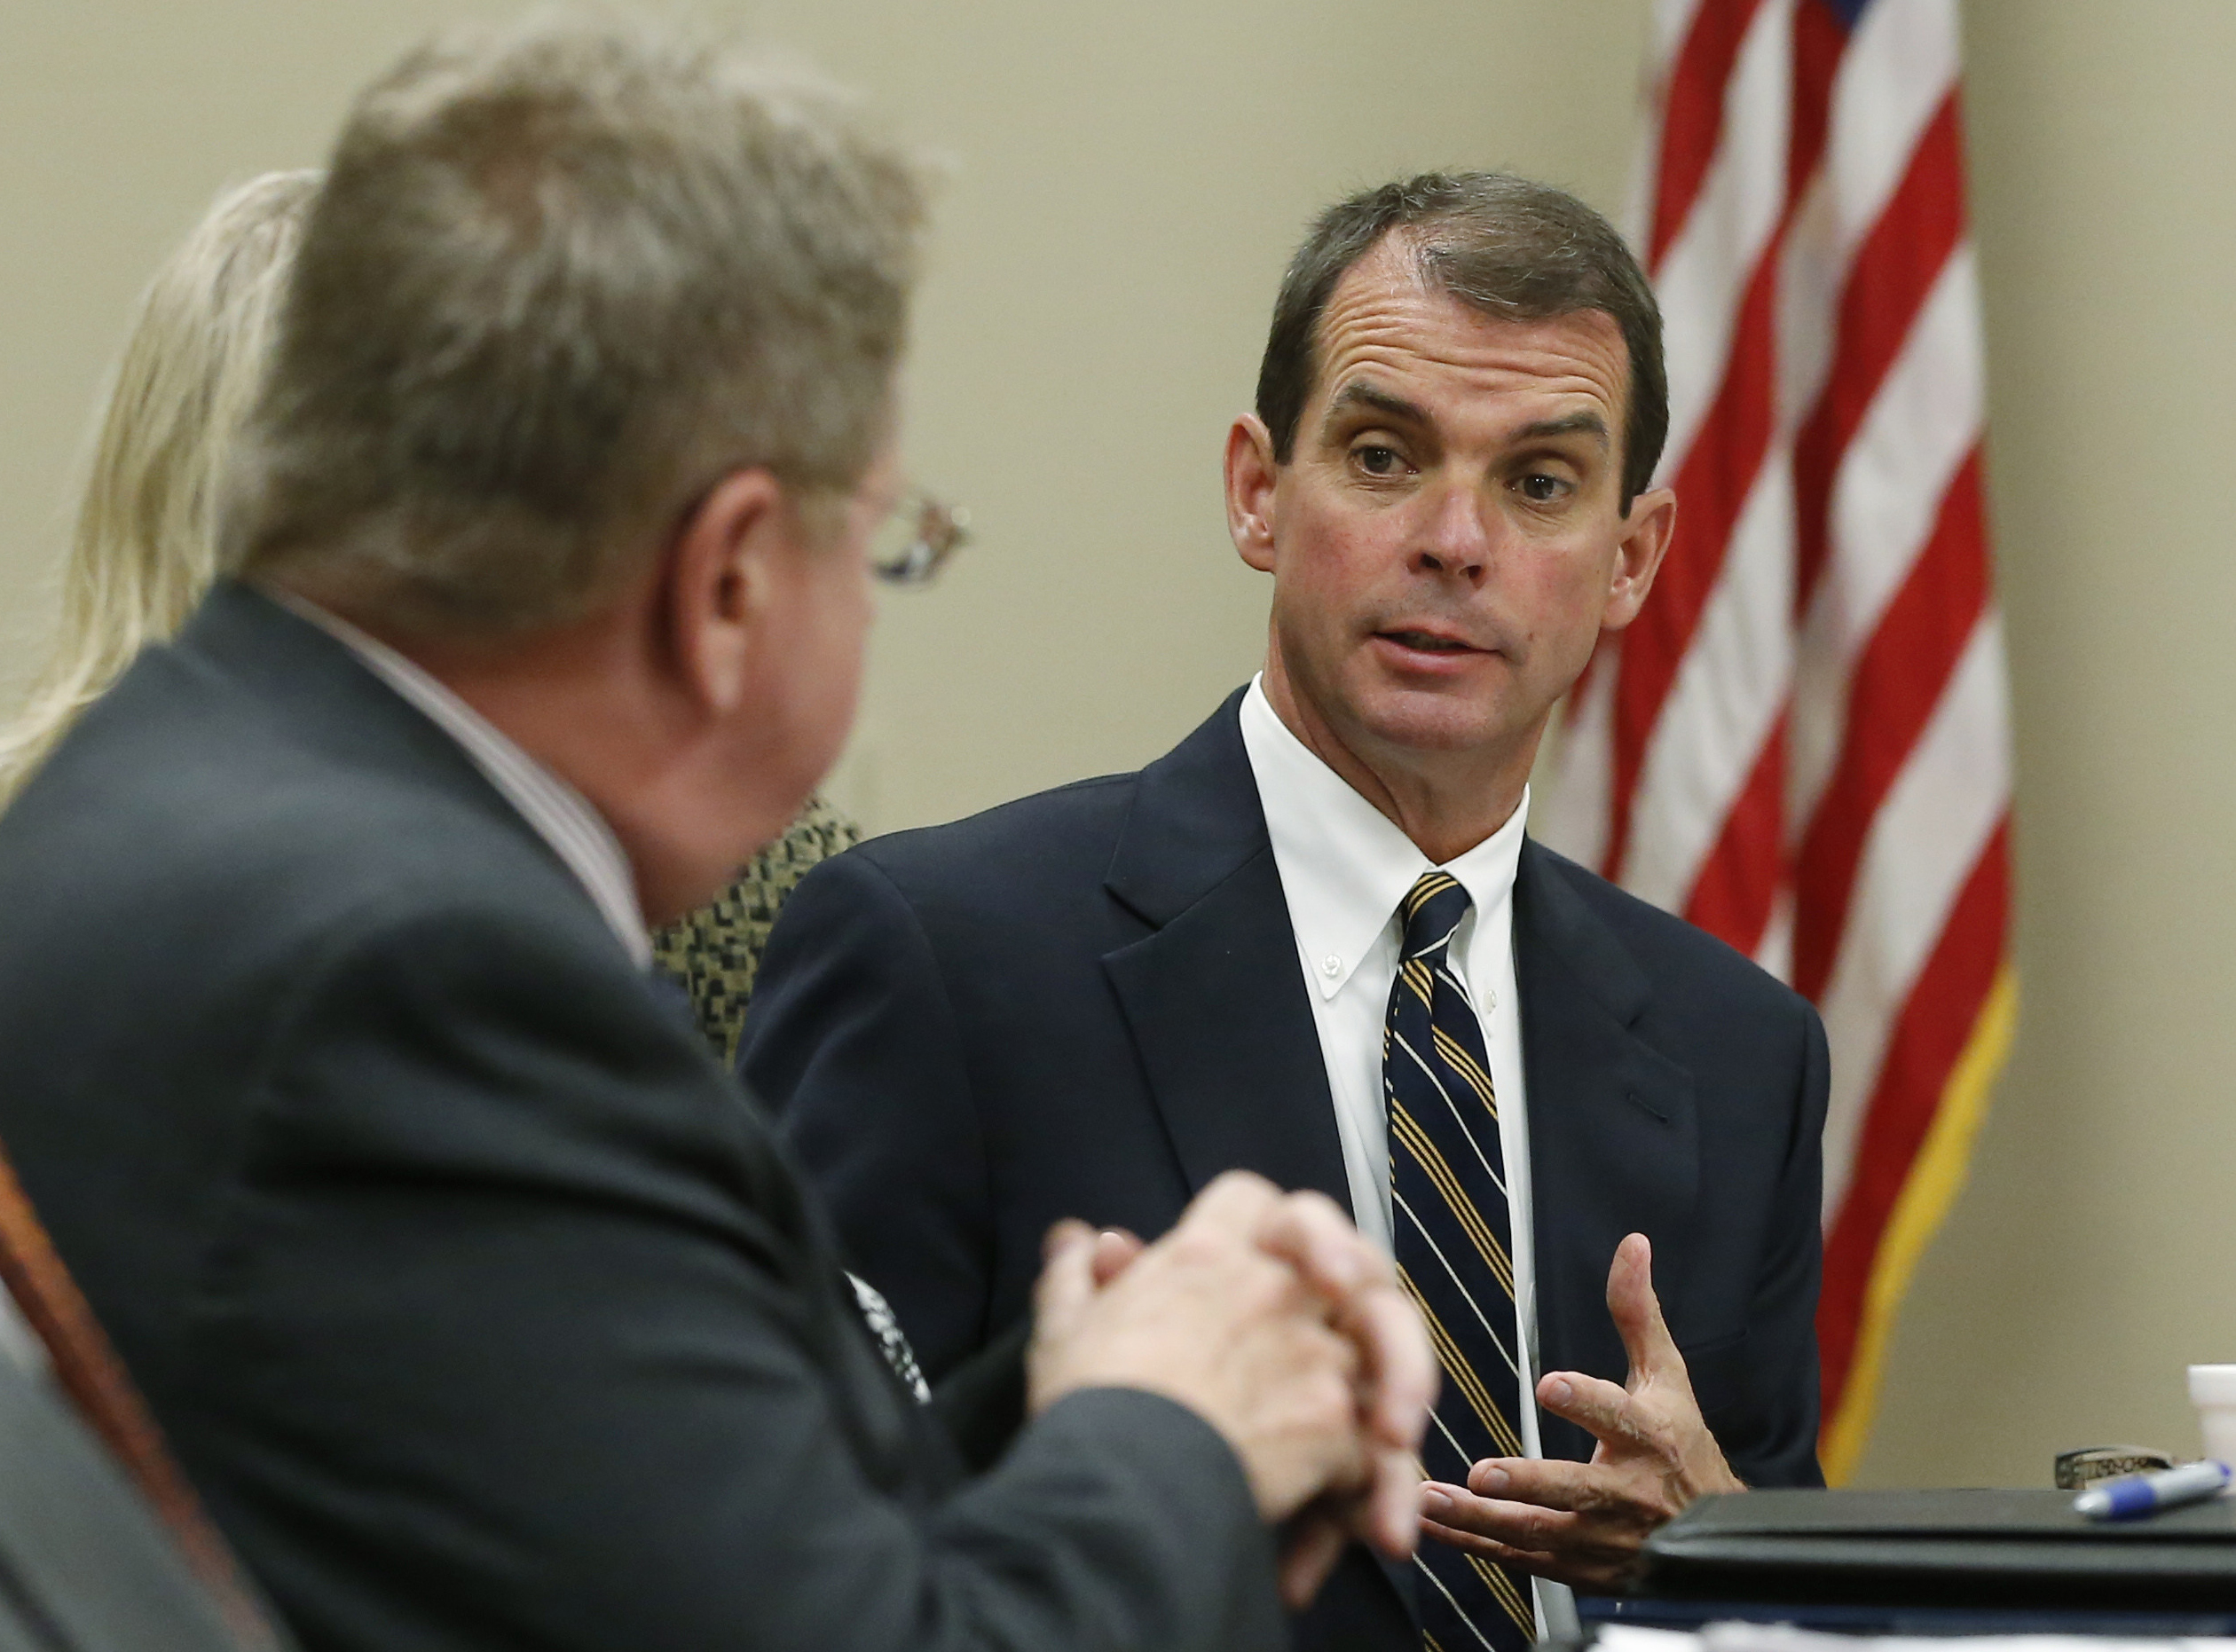 State Health Commissioner Resigns Amid Allegations of Financial Mismanagement